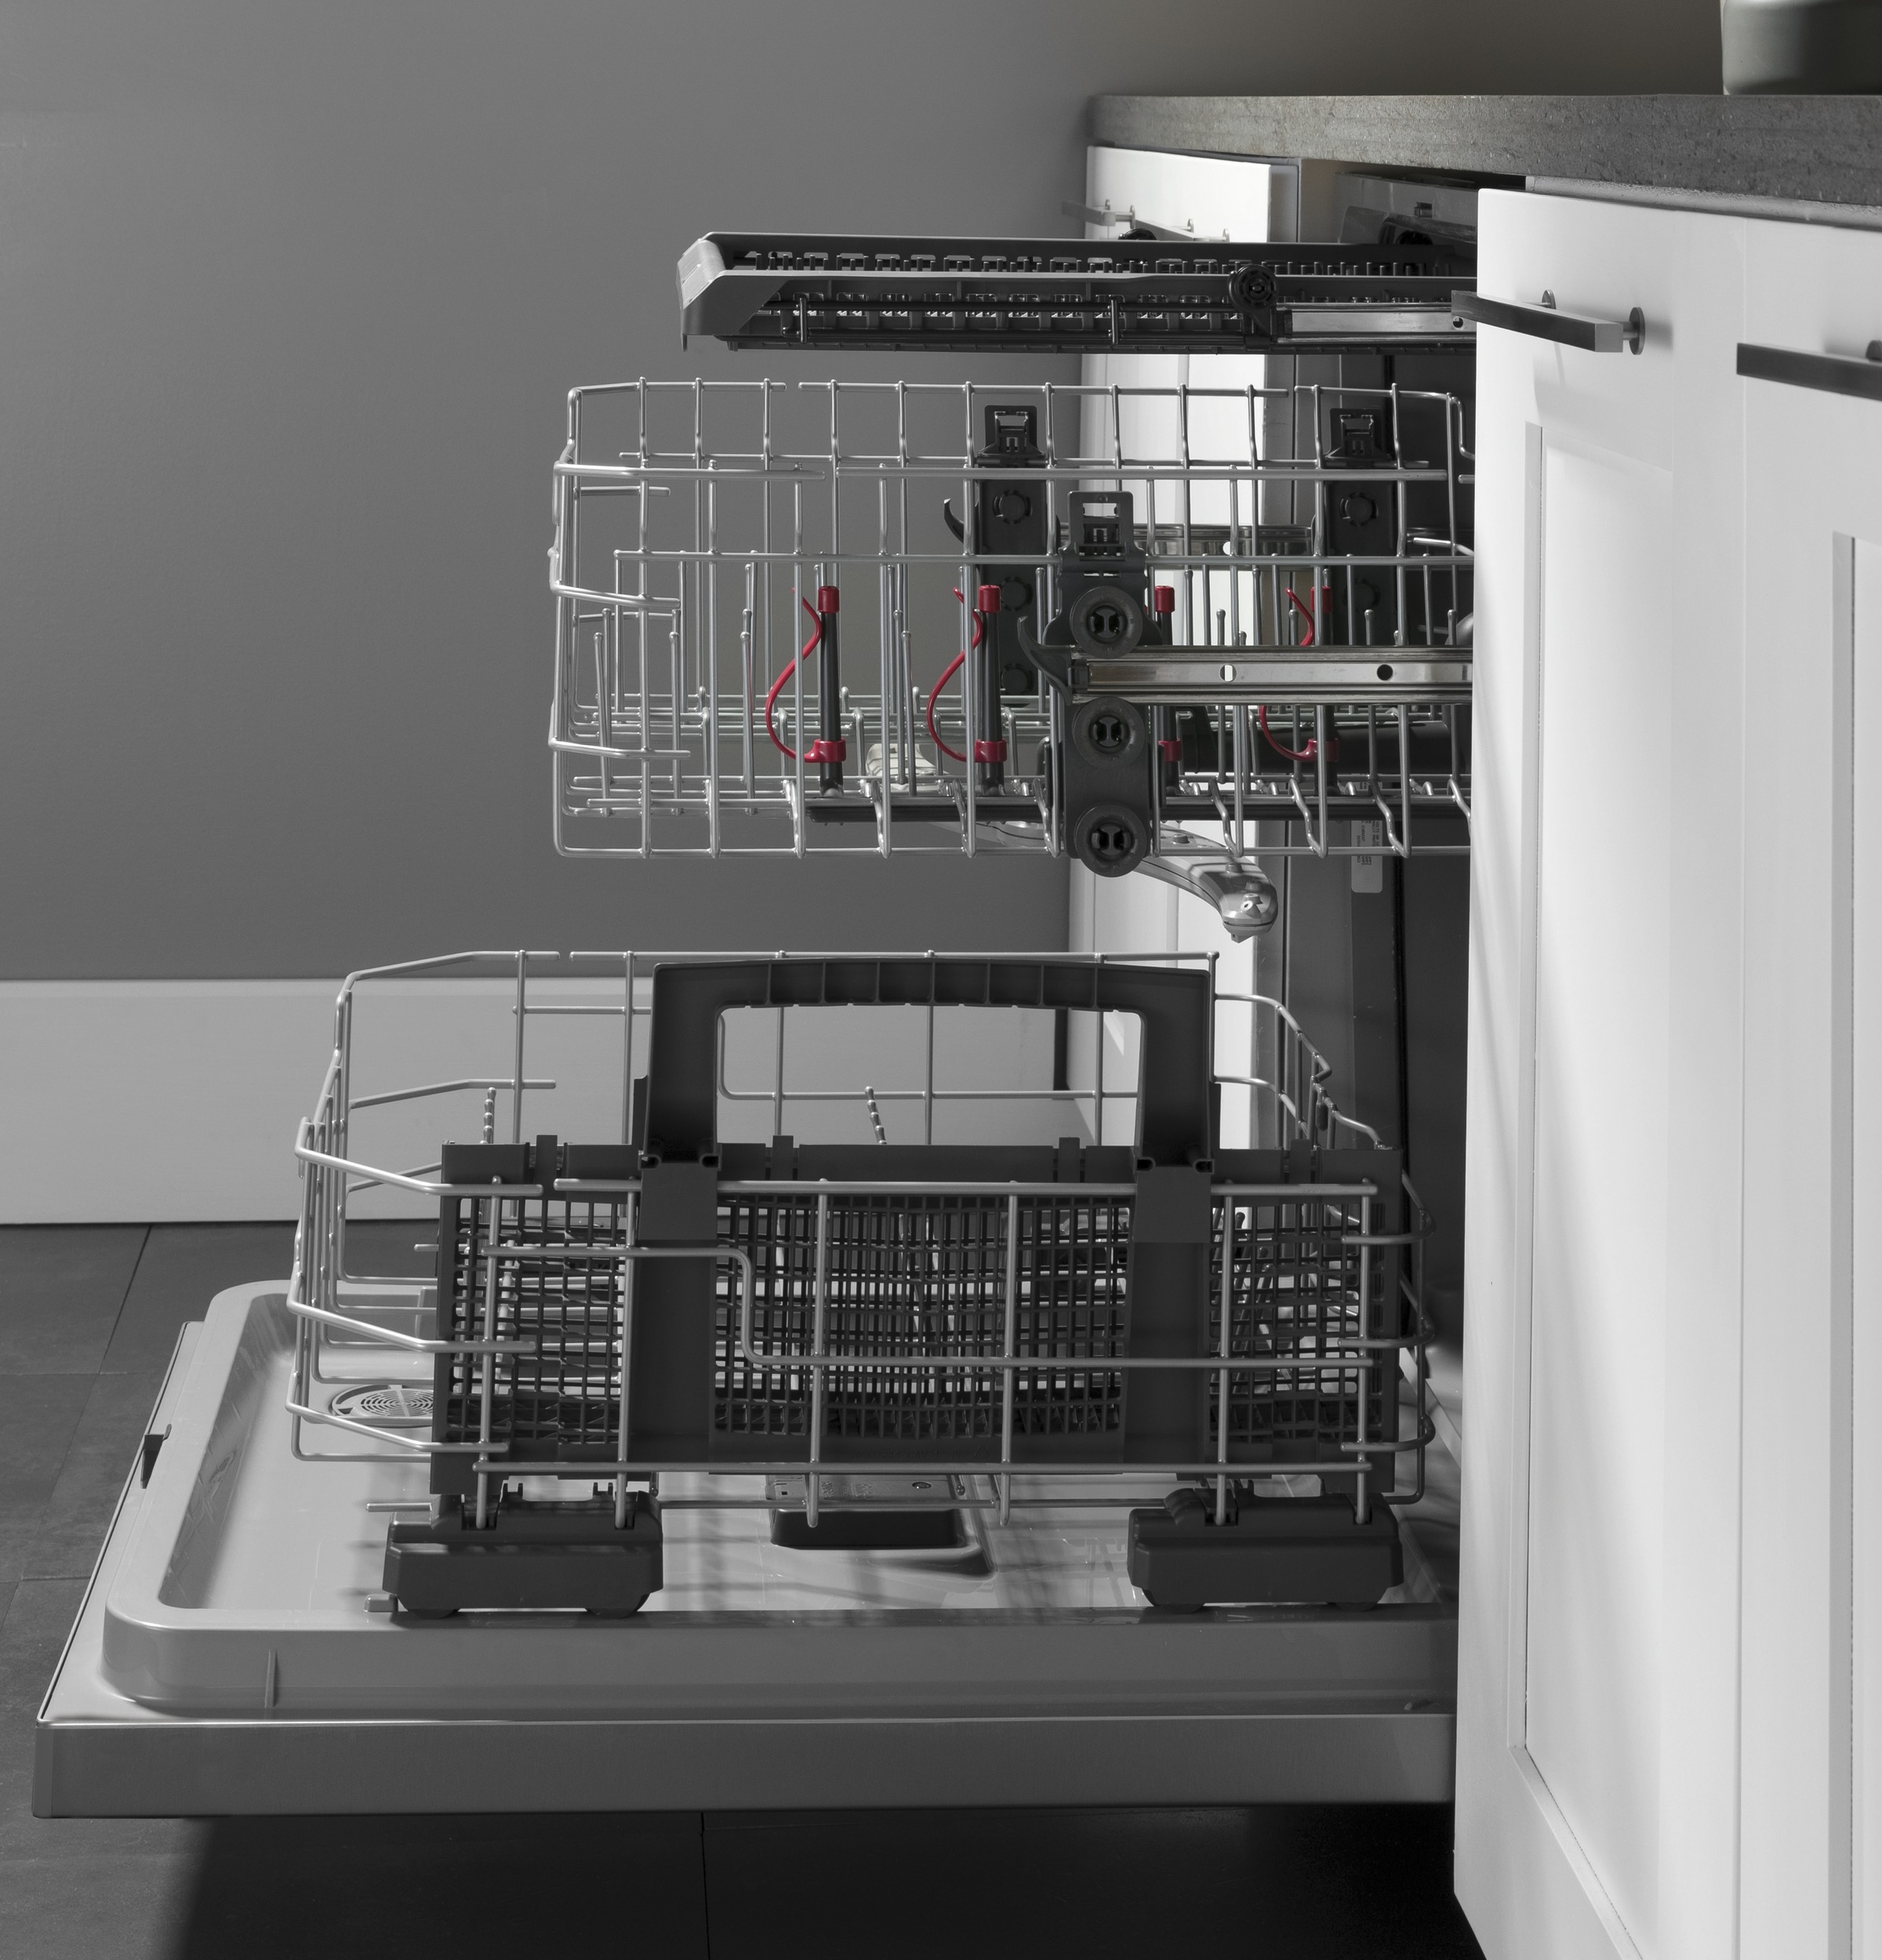 Model: GDT630PFMDS | GE GE® Top Control with Plastic Interior Dishwasher with Sanitize Cycle & Dry Boost